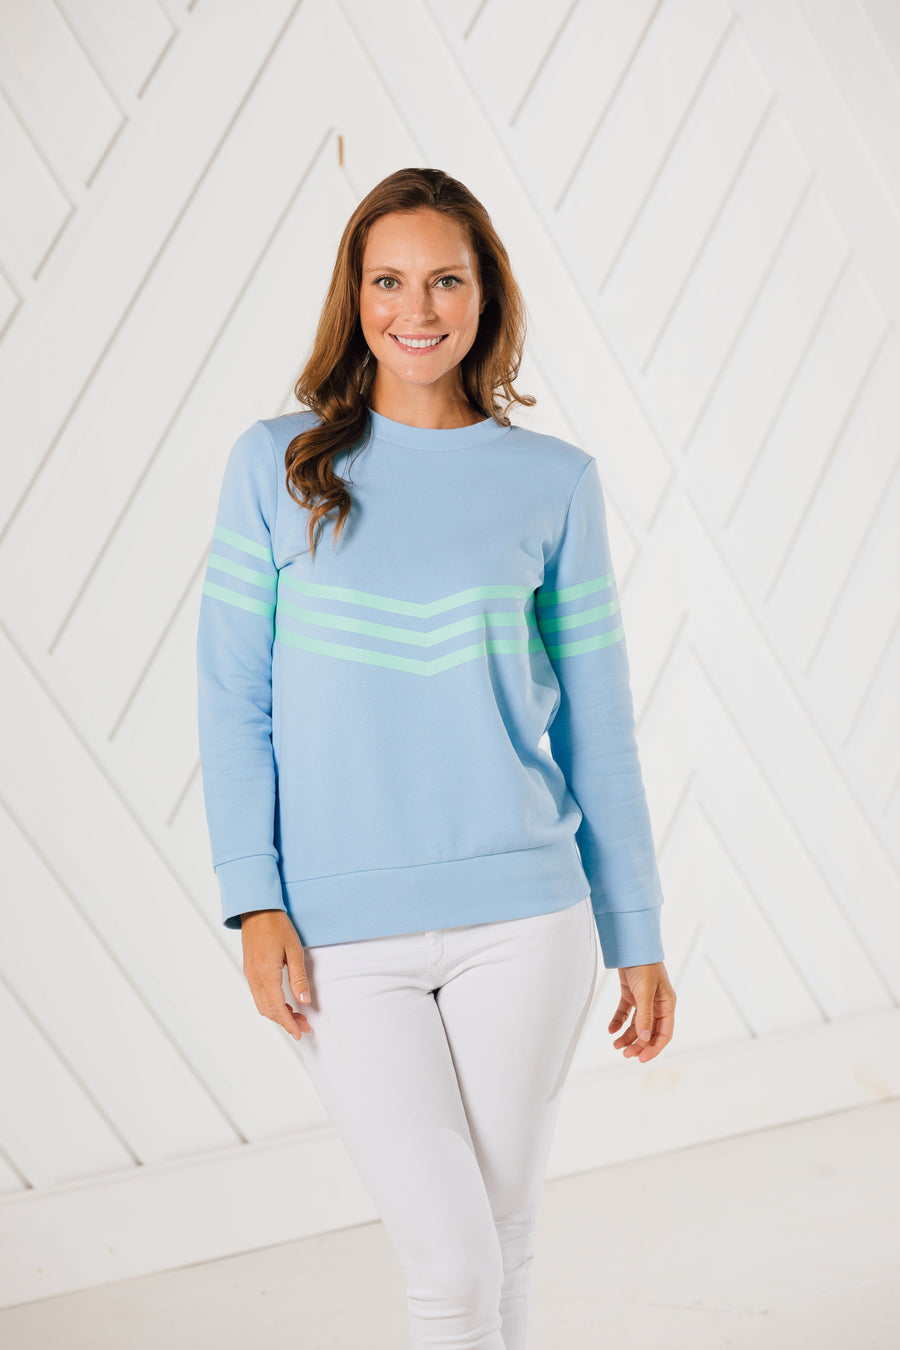 Inverted Stripe Sweatshirt (two colors)